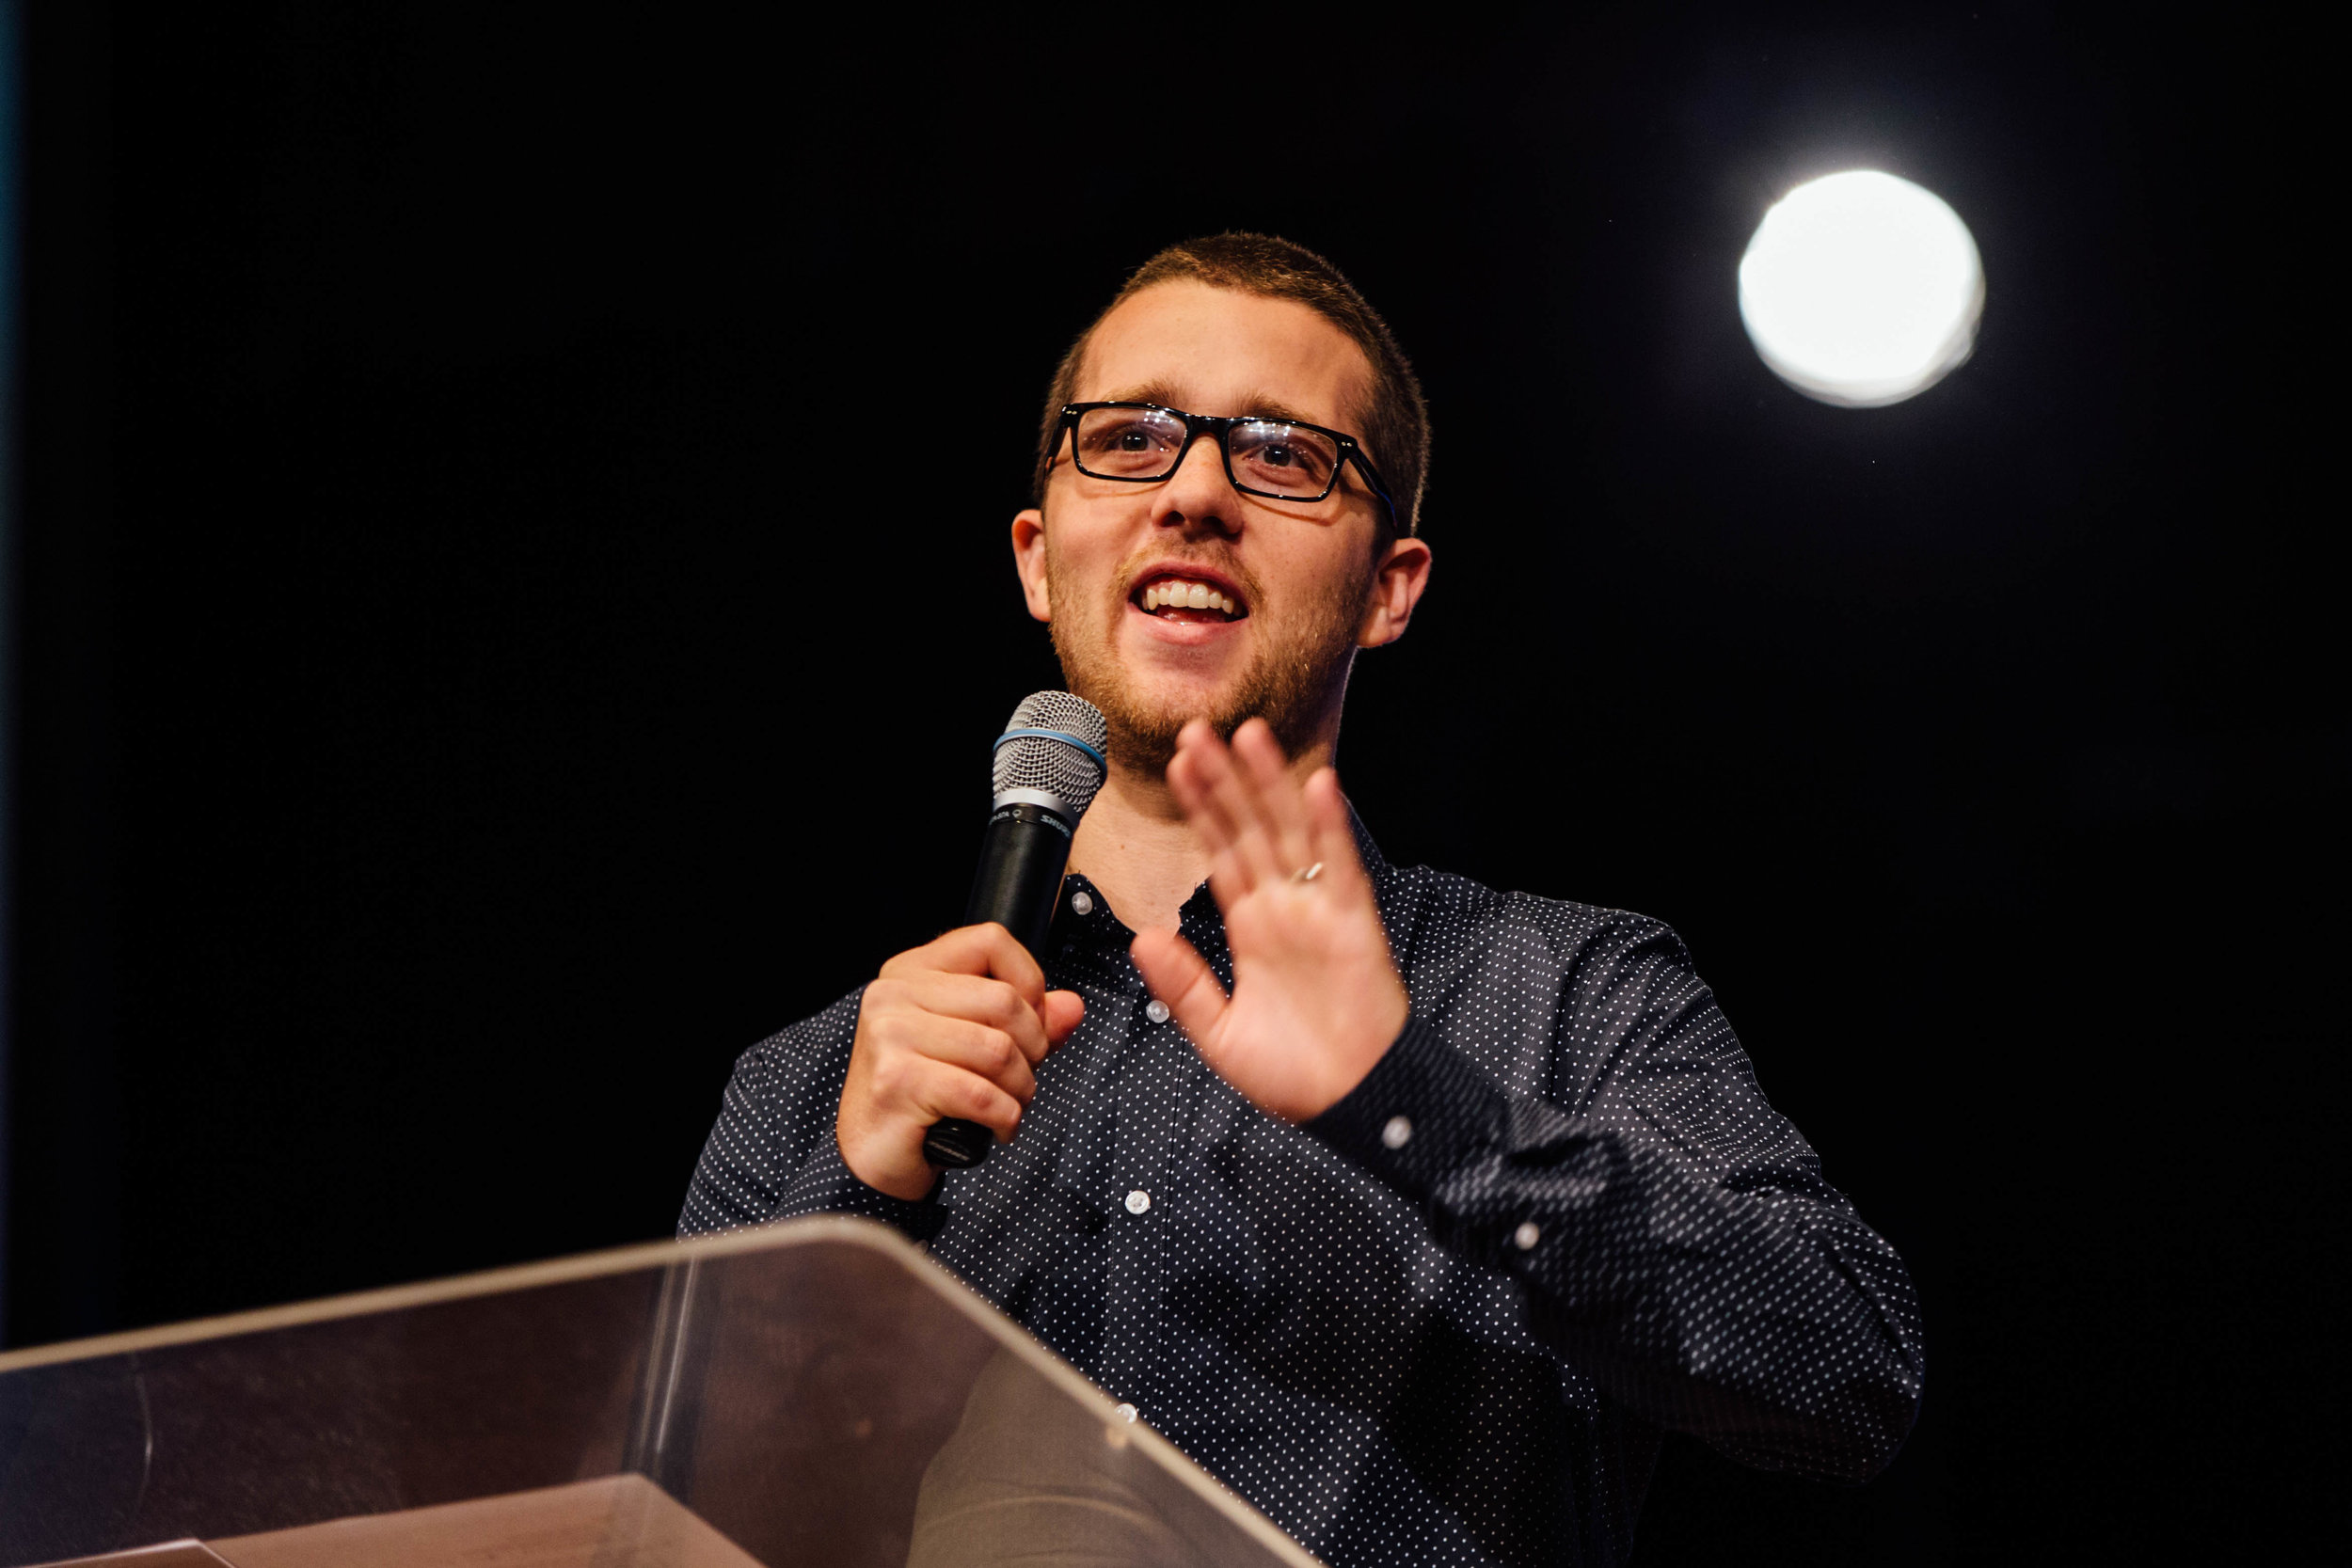 Using your Spiritual Gifts and Practical Application in Community - joel penney, c4 port perry site pastorIn 2011 Pastor Jon led our church through a 10 week sermon series about spiritual gifts, which was a brand new conversation for our church at the time. Years later, that series has proved to be a pivotal turning point in C4's story. In short, hundreds of people across our church began operating in their God-given spiritual gifts, almost overnight. It changed the very fabric of our church. But with that came a multitude of new questions and challenges. Our church has been like a laboratory for working out spiritual gifts in local church life ever since.In this session we will be build on what Pastor Jon teaches about spiritual gifts in the main sessions and dive deeper into the practical side of working spiritual gifts out in community. If you already know what your spiritual gifts are and are part of a local church that seeks to practice the gifts in community, this session is for you. We'll move beyond gift-theology and gift-discovery to we can talk through the practical side of actually using the gifts in community. Come and ask your questions as you've been using your gifts in community and we'll tackle them together.